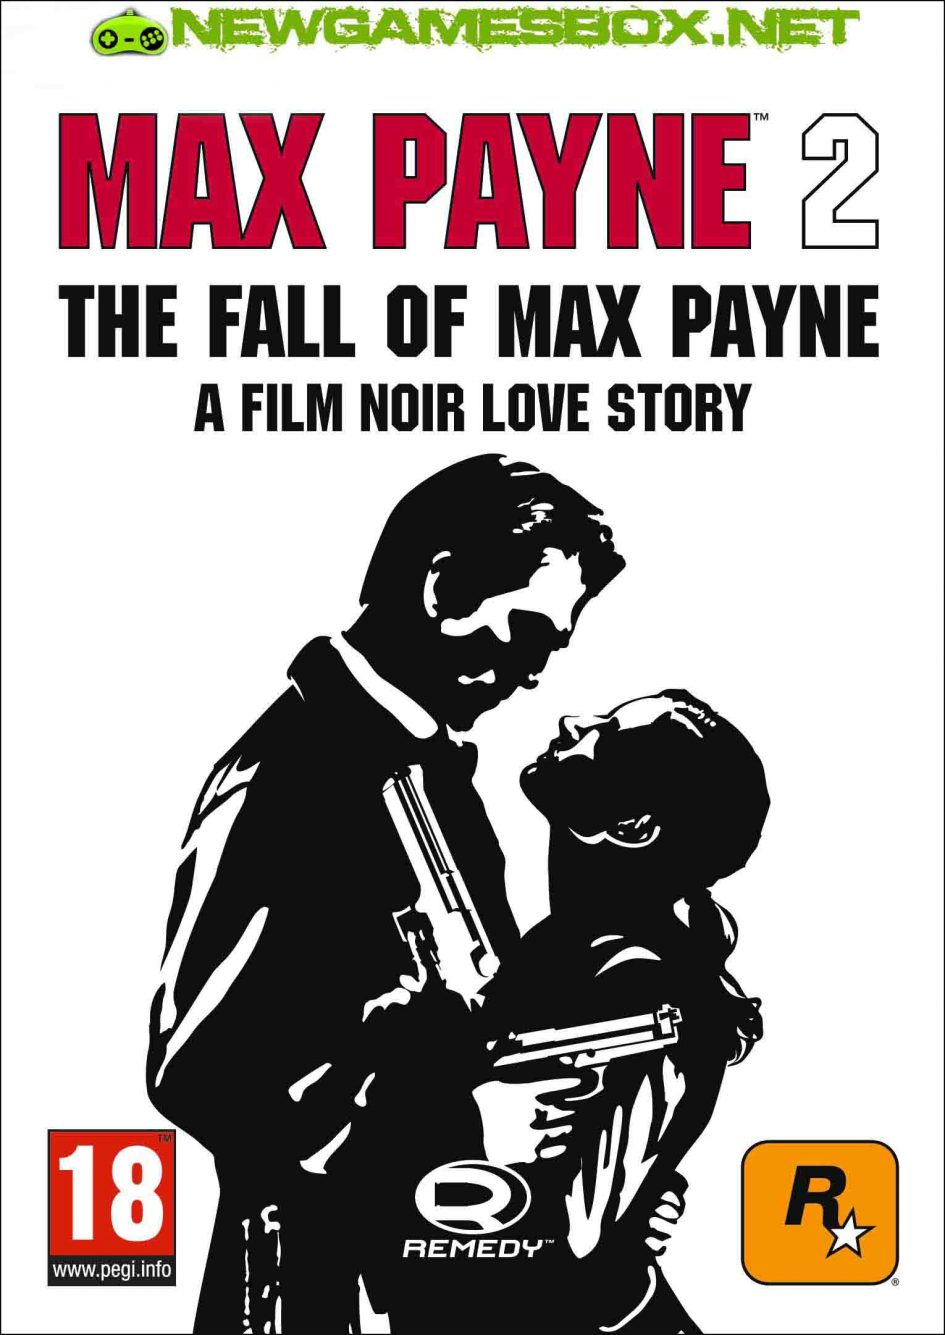 Max payne 2 free download pc game.